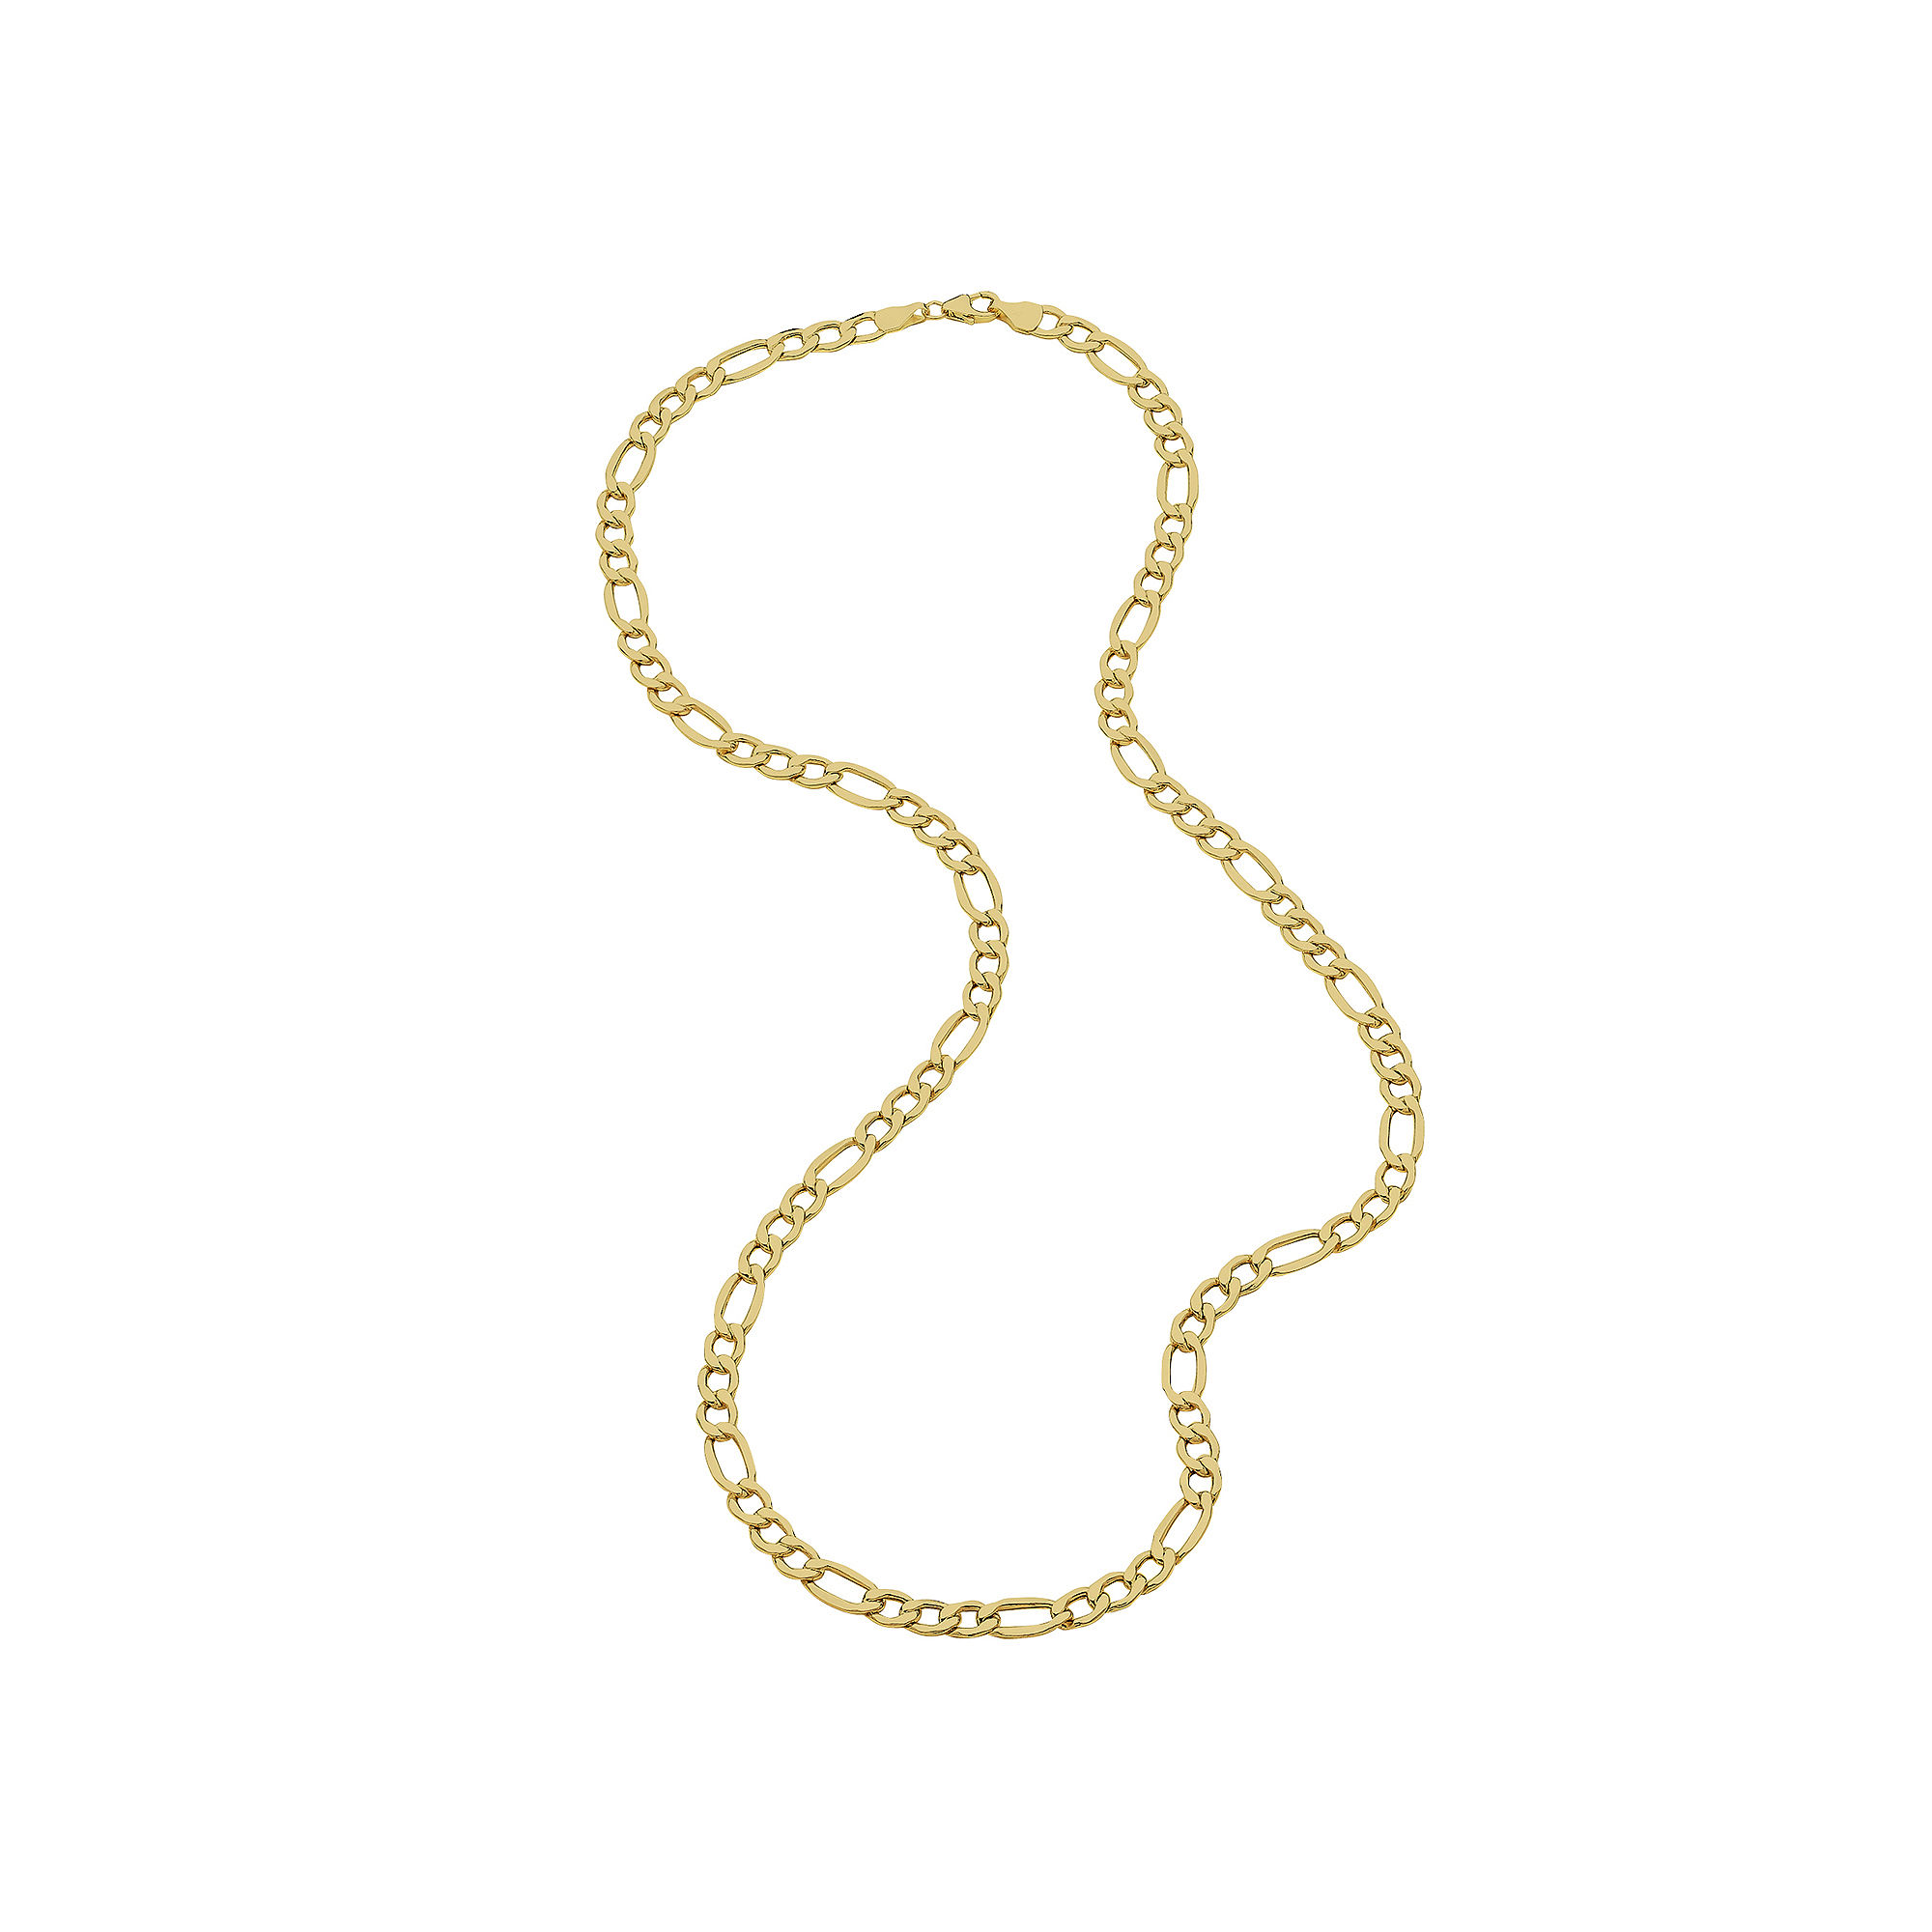 "Made in Italy 14K Yellow Gold 22"" Hollow Figaro Chain Necklace"